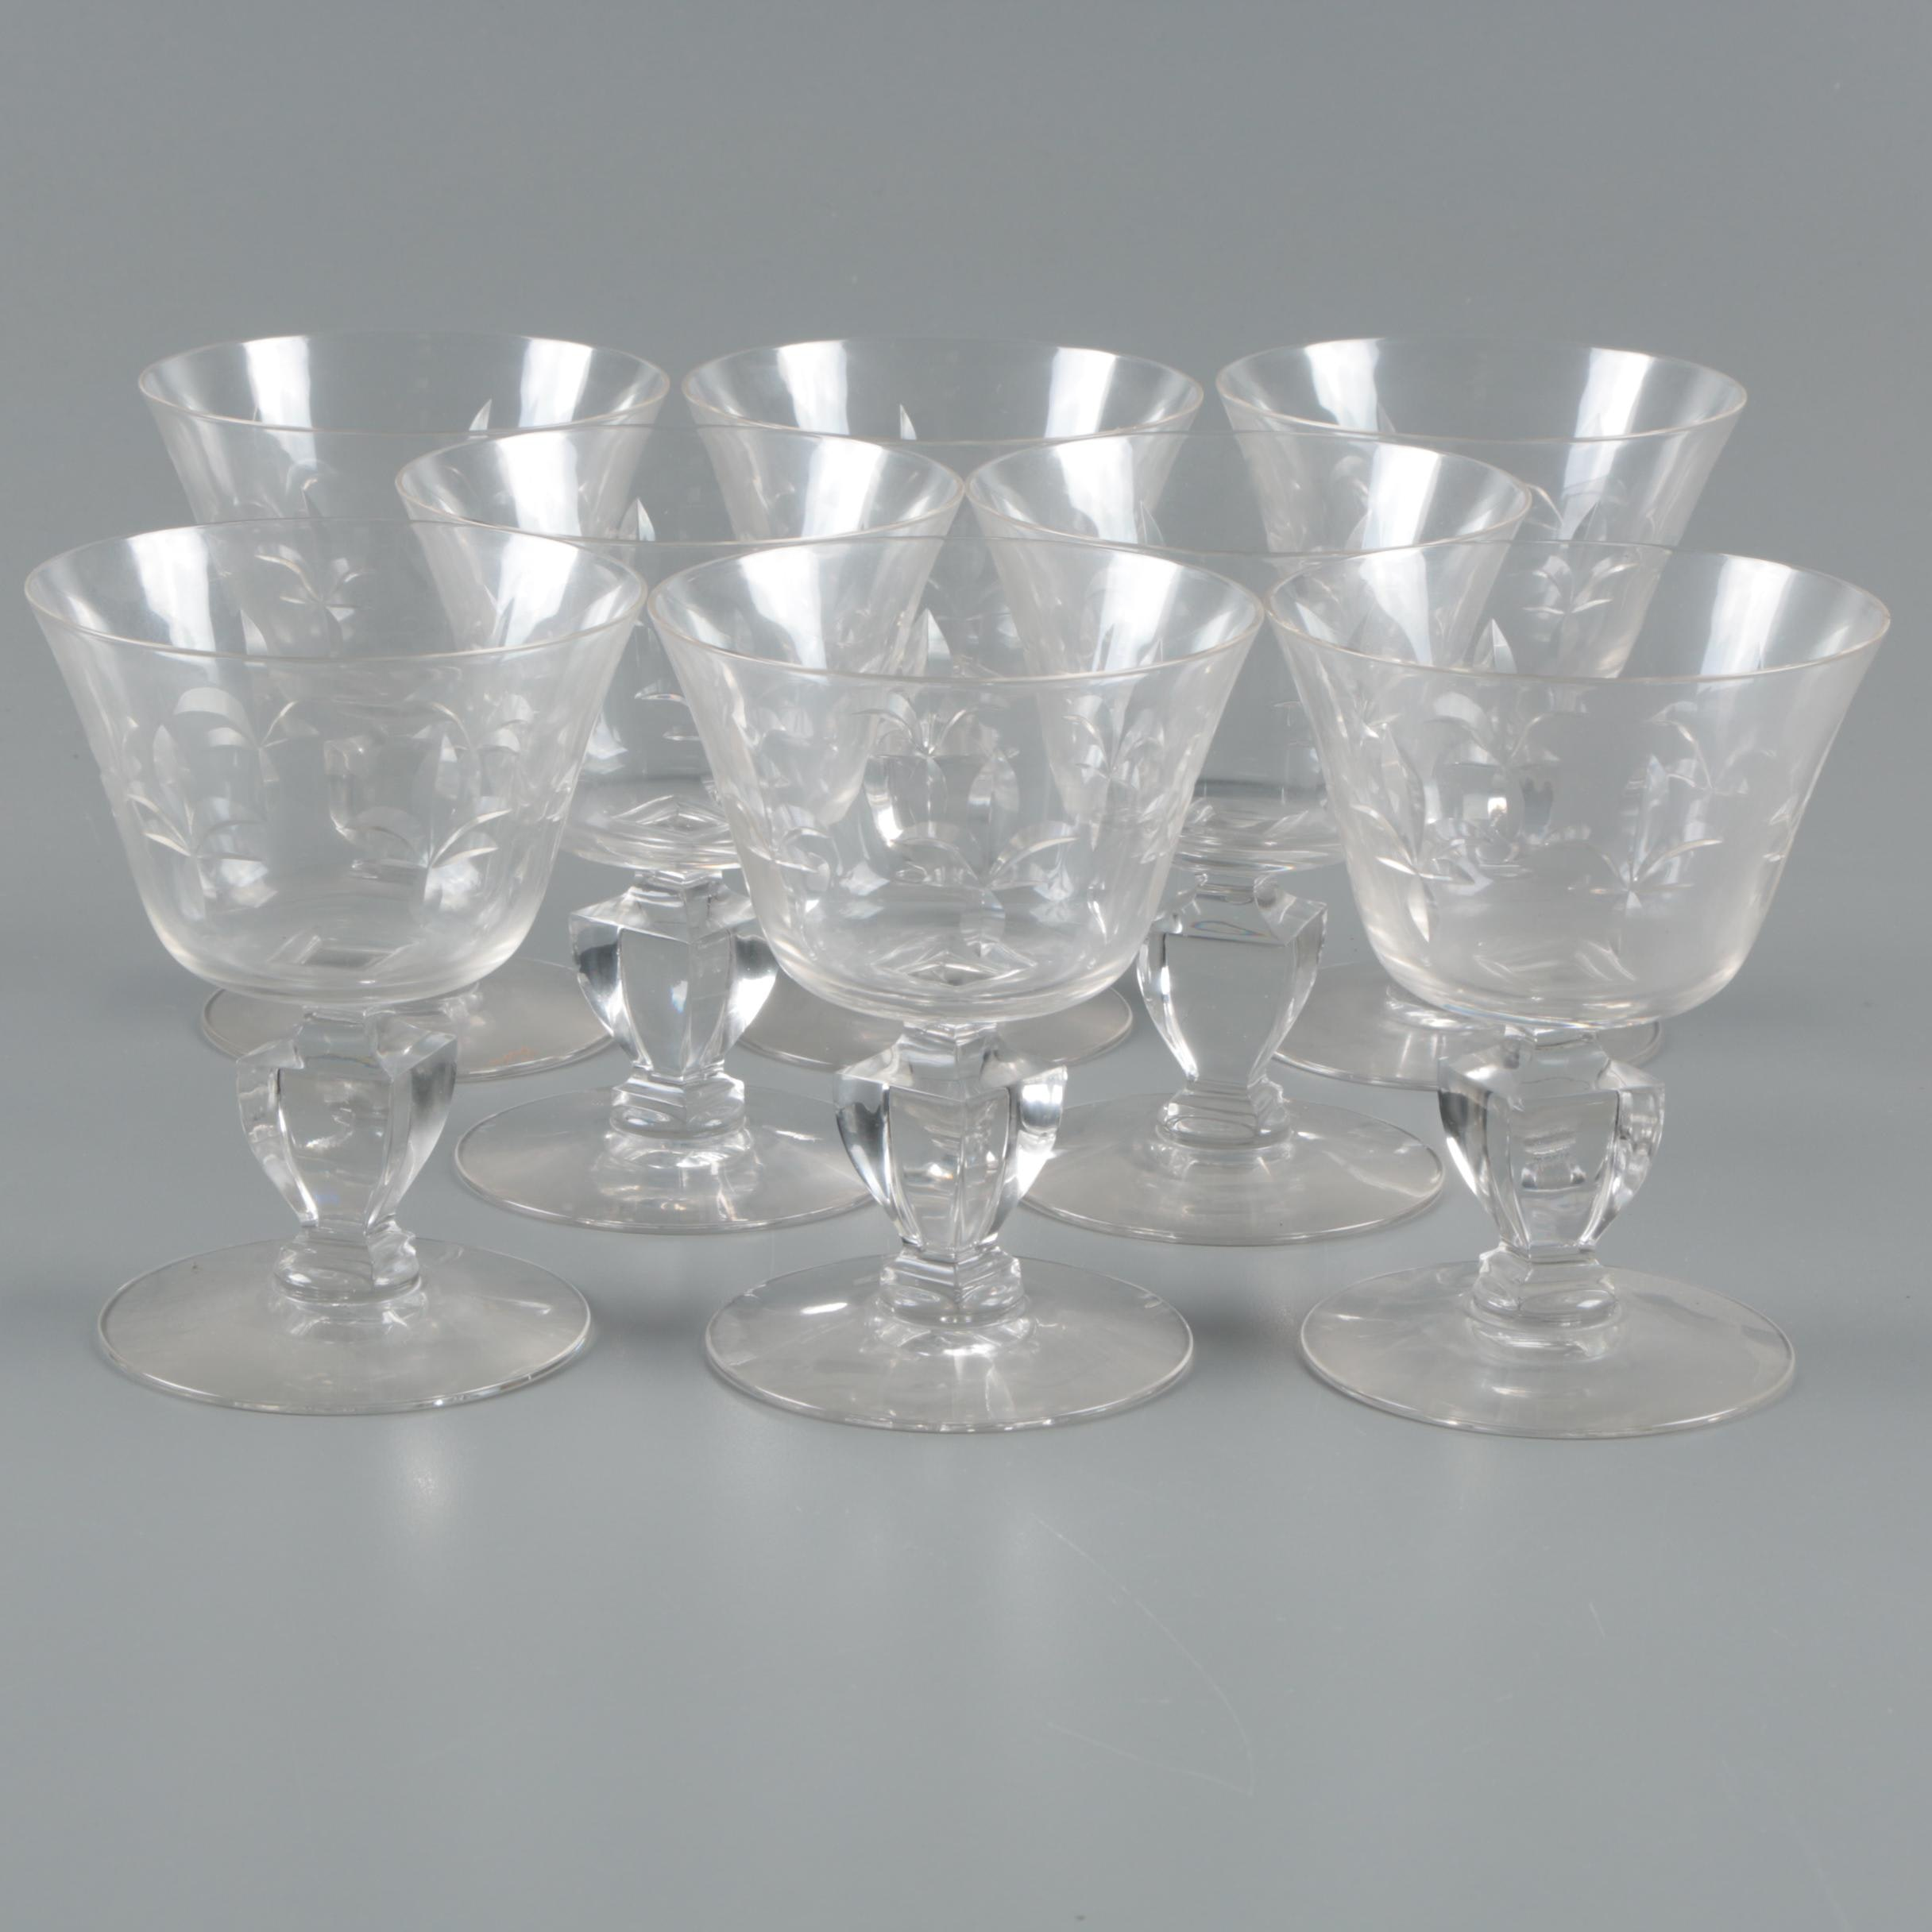 Vintage Etched Glass Wine Glasses